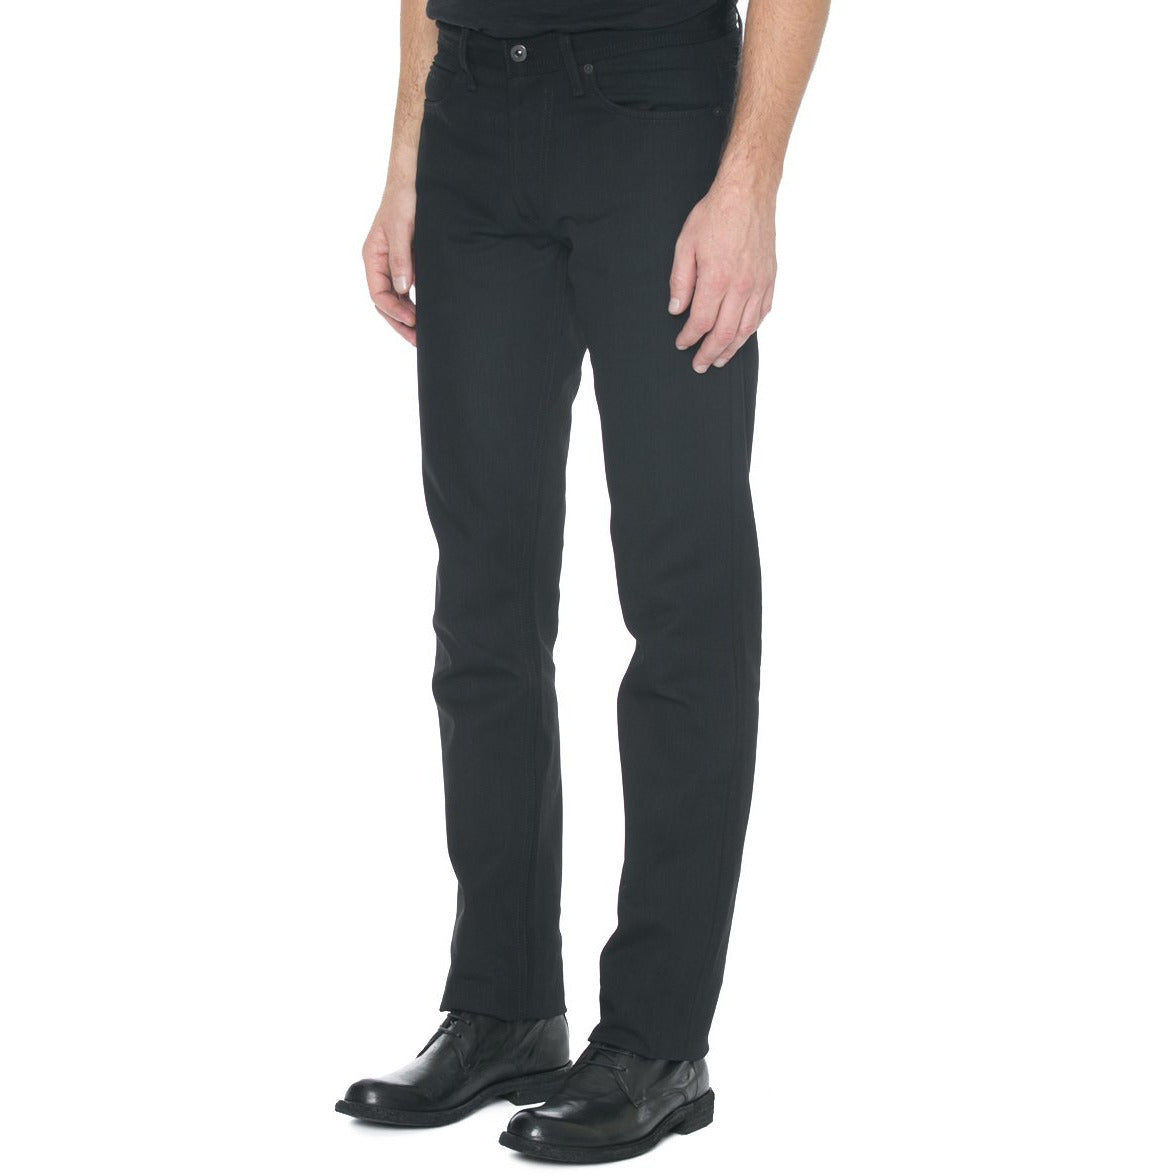 Narrow Fit Black Denim